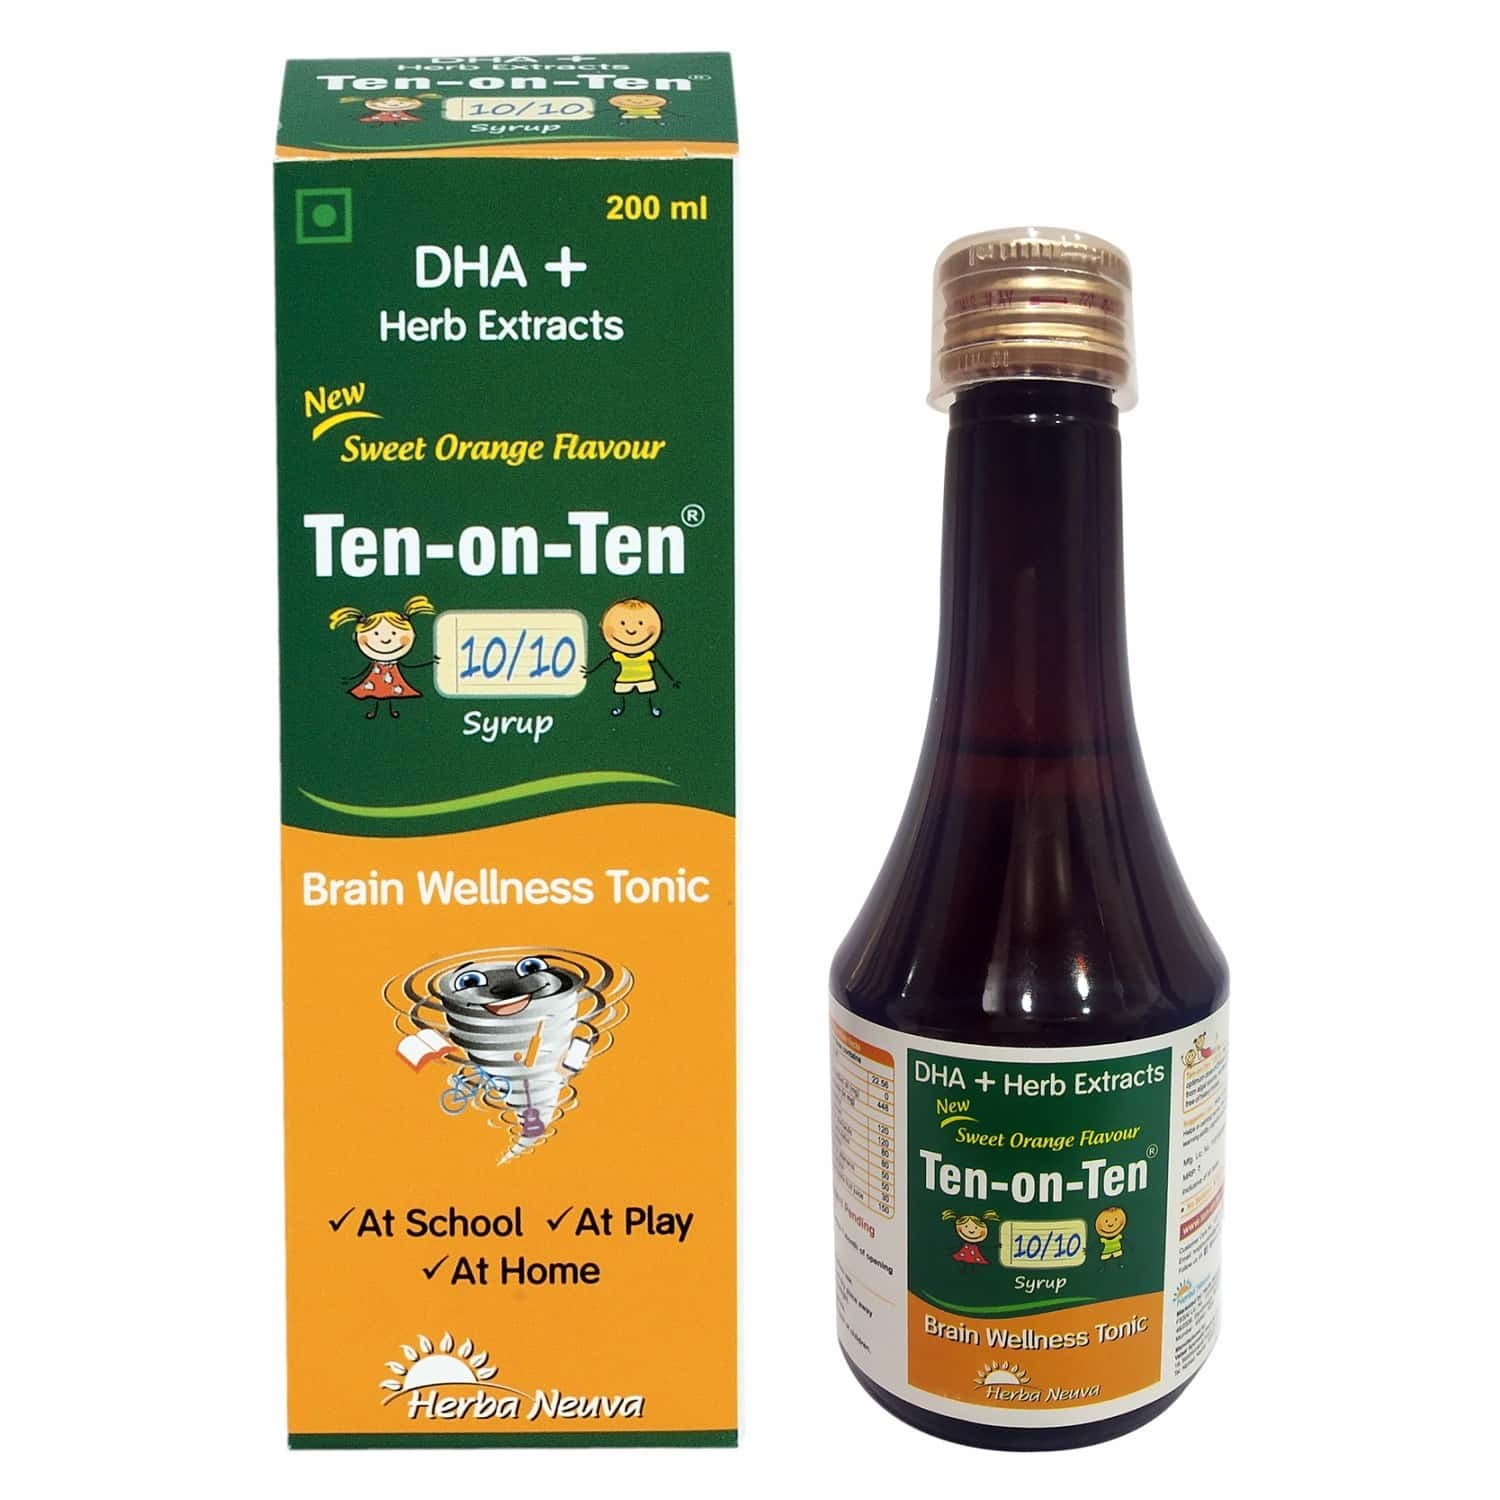 Herba Neuva Ten-on-ten Syrup Veg Omega-3 (dha) With Herb Extracts.supports Brain Function-1x200ml